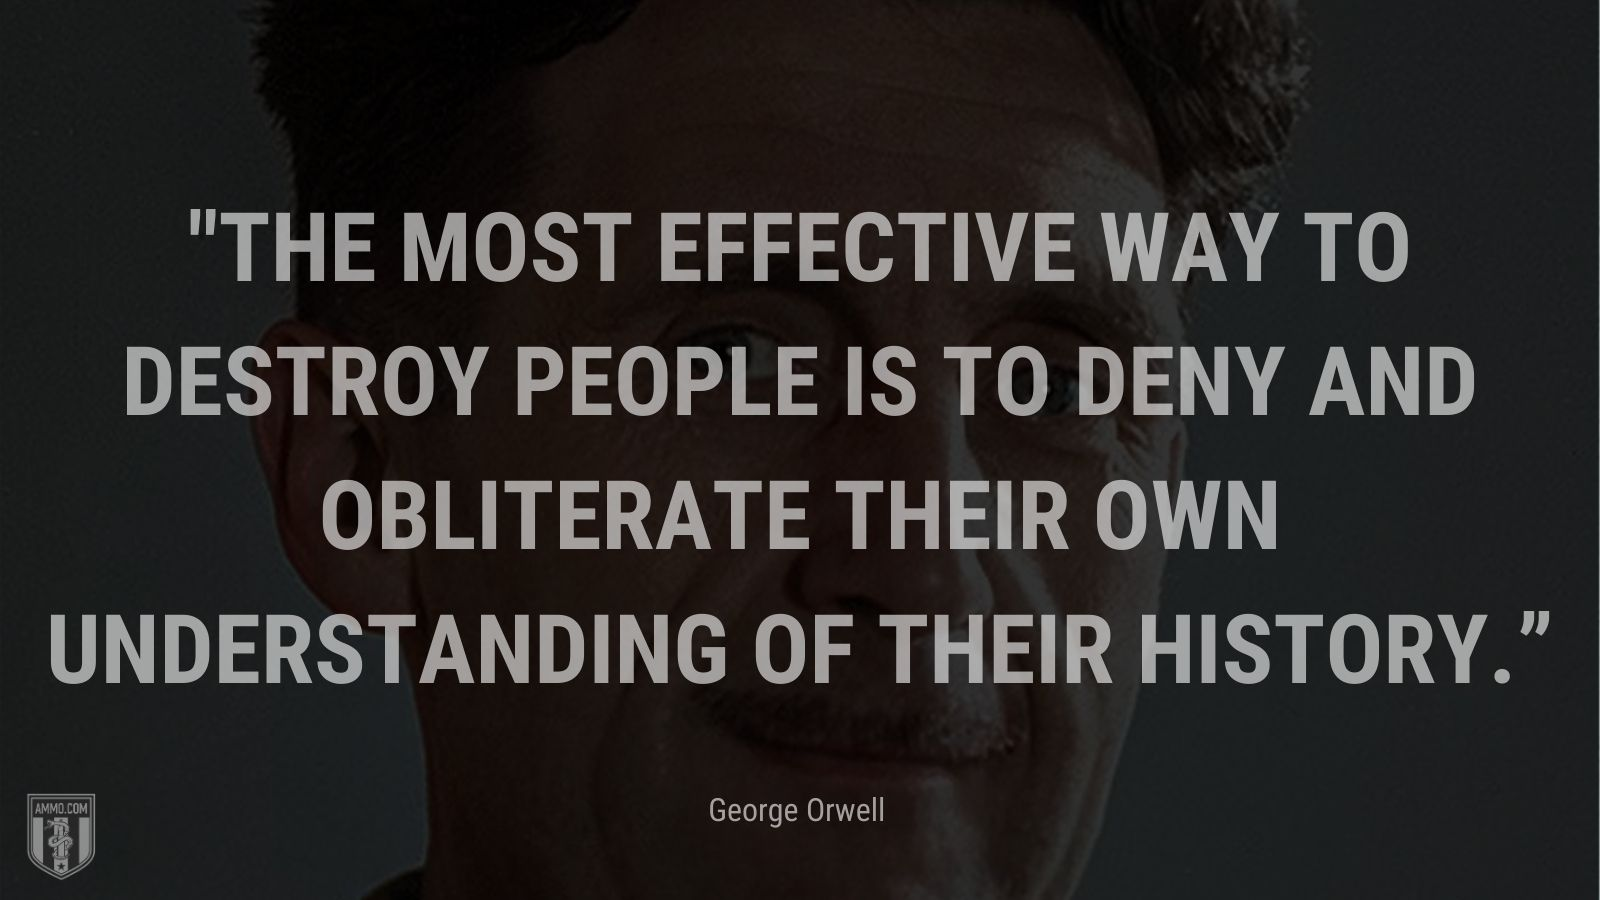 """""""The most effective way to destroy people is to deny and obliterate their own understanding of their history"""" - George Orwell"""